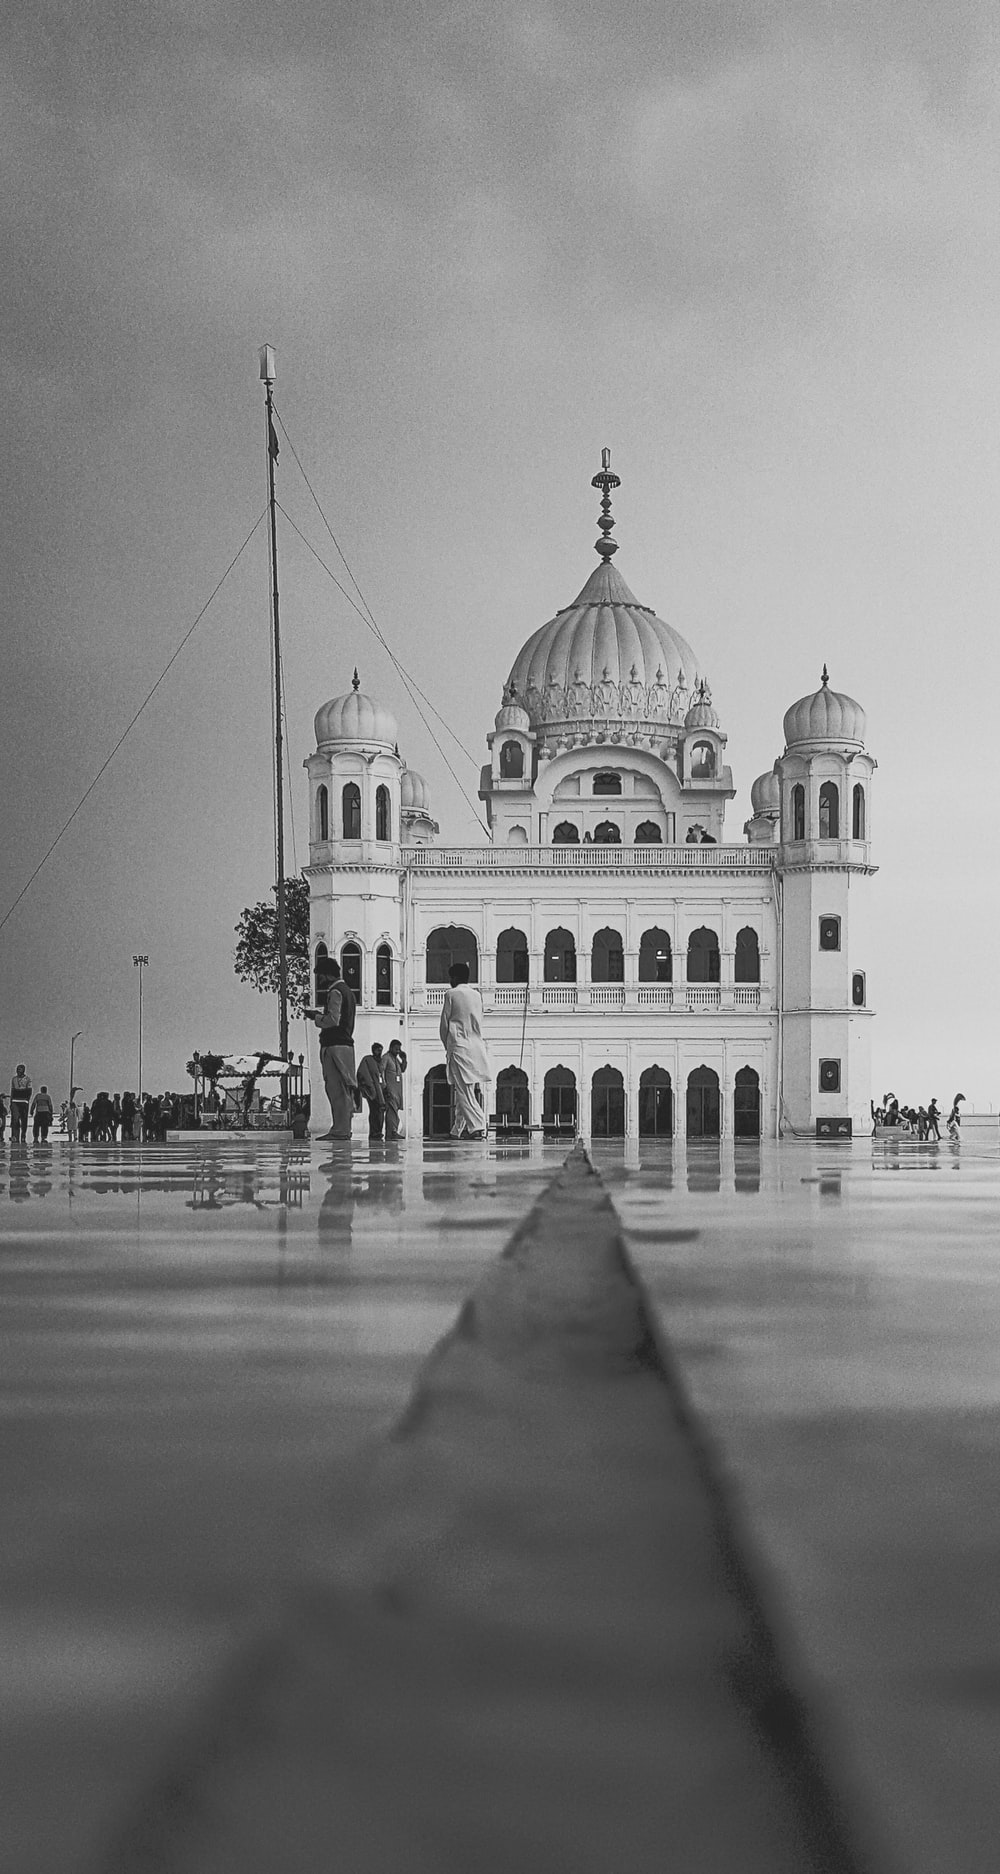 grayscale photo of people walking near dome building